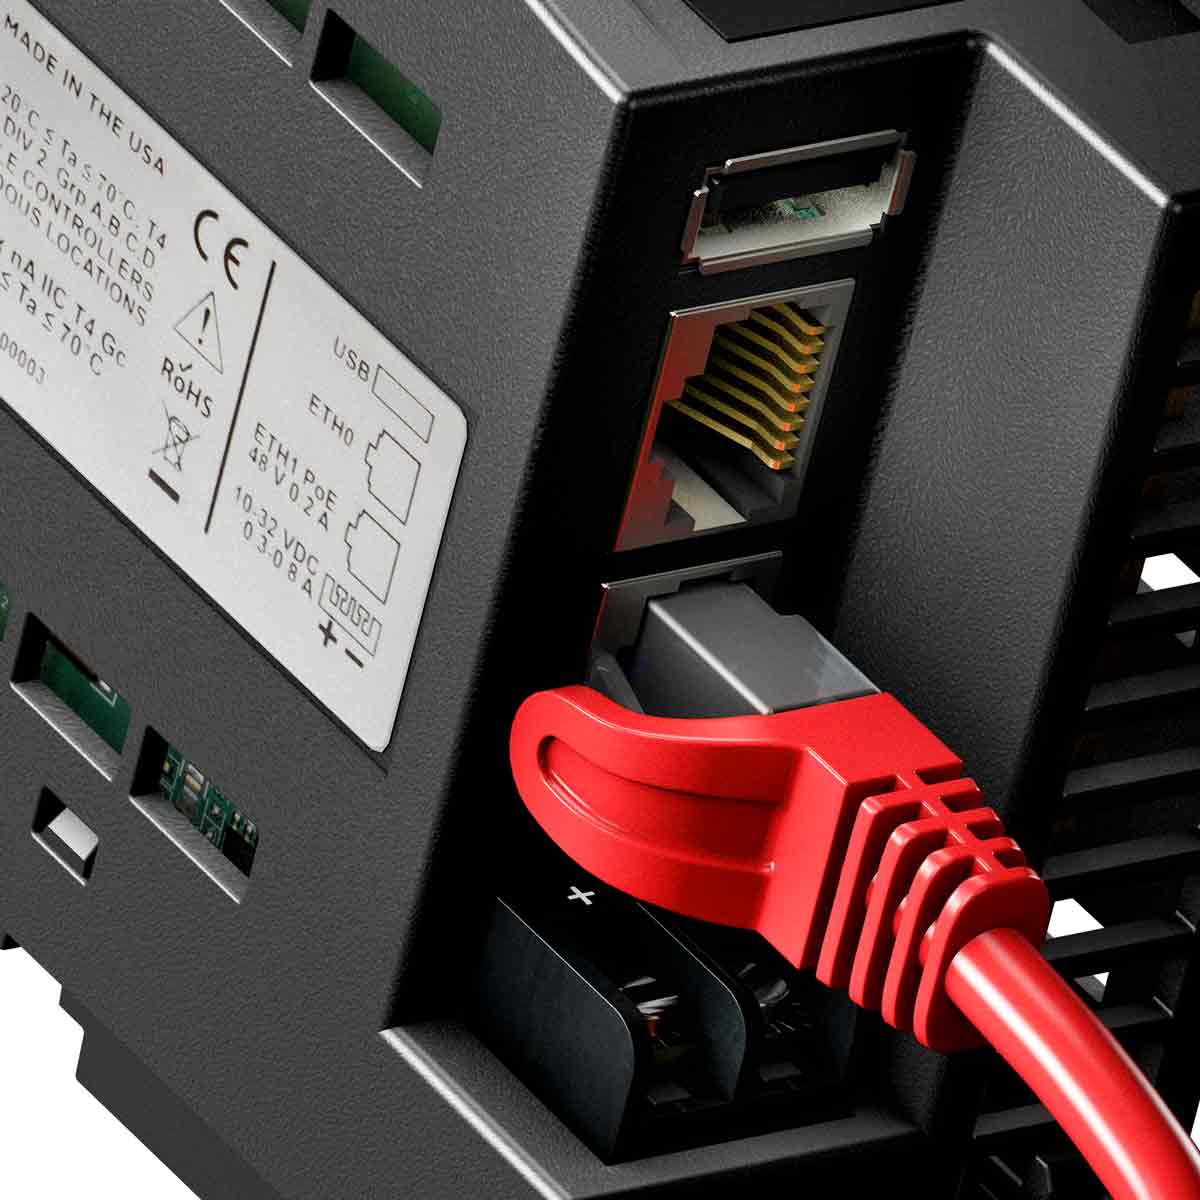 groov RIO powered by Ethernet